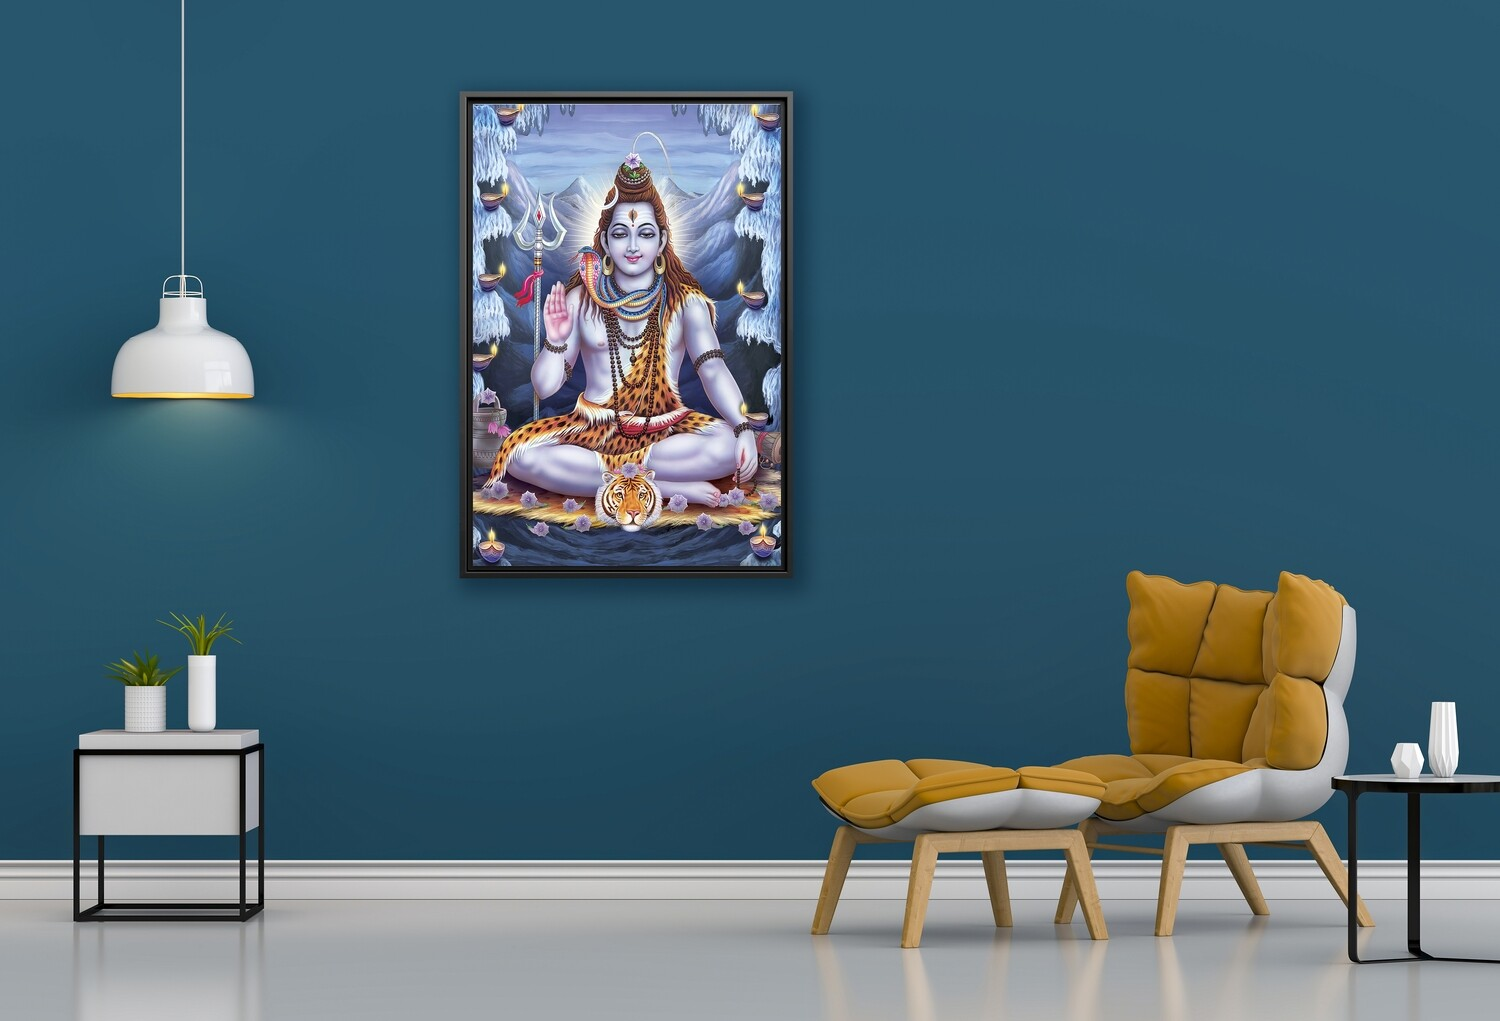 Shiva Painting - Framed Hindu God Modern Wall art - Shiva Picture Printed on  Acrylic Glass - Framed and Ready To Hang